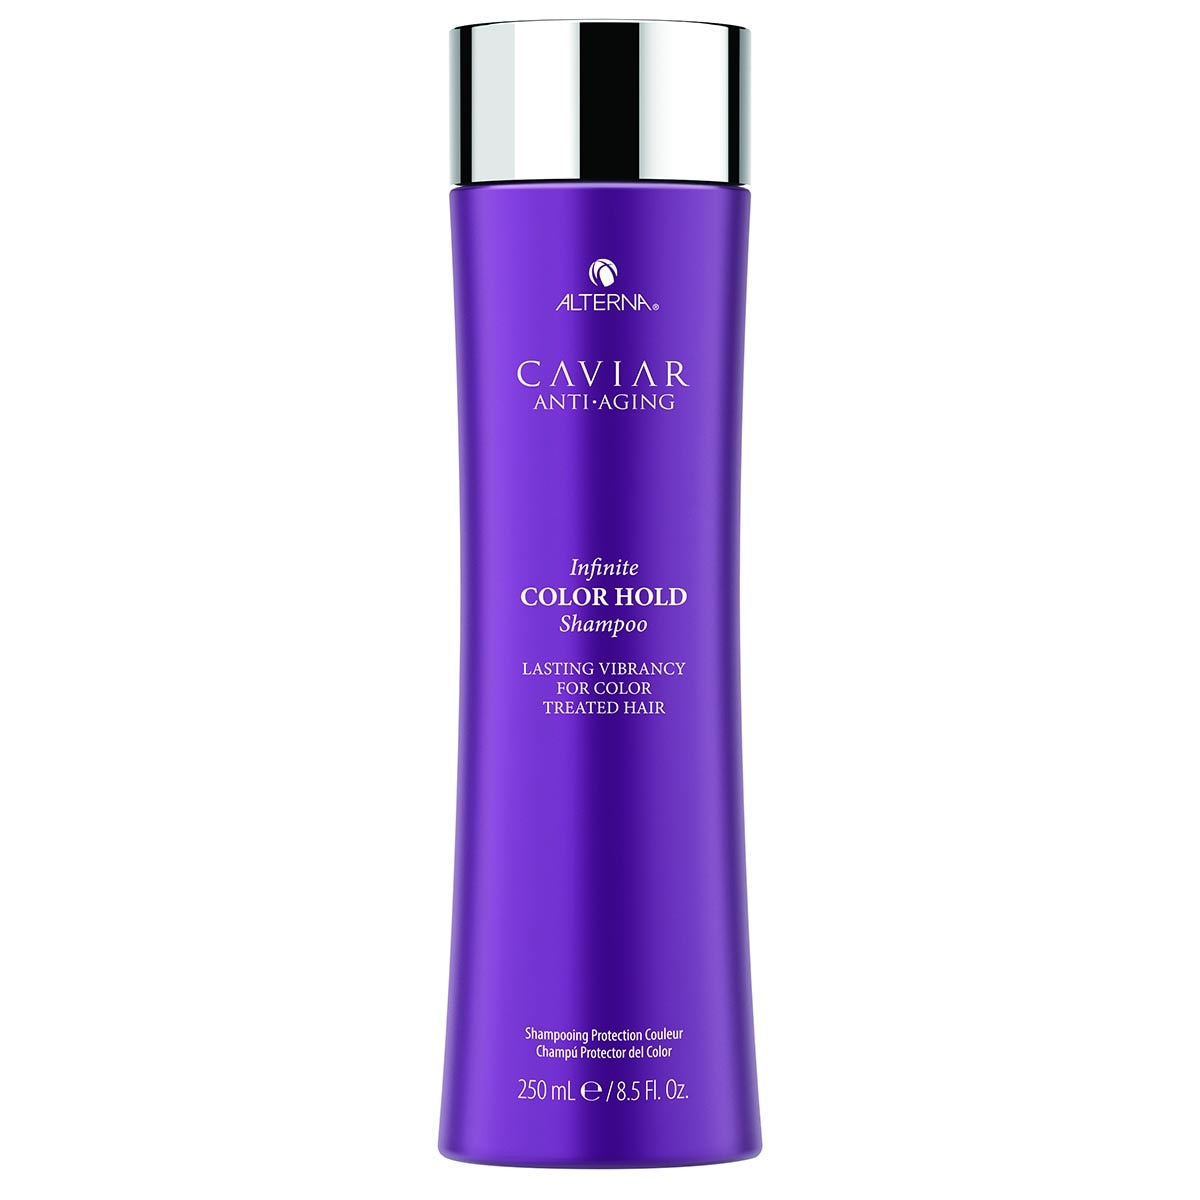 CAVIAR ANTI-AGING INFINITE COLOR HOLD SHAMPOO (CHAMPÚ)